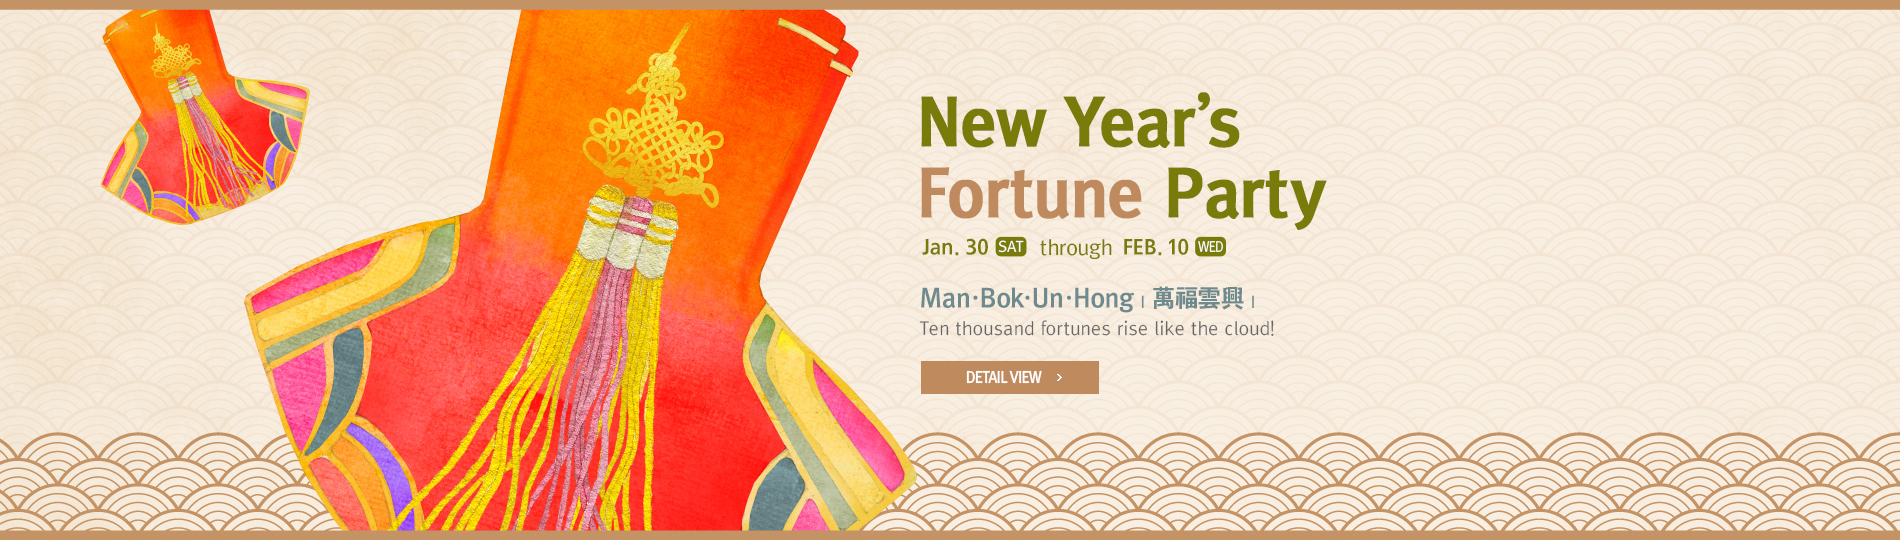 New year's fortune party